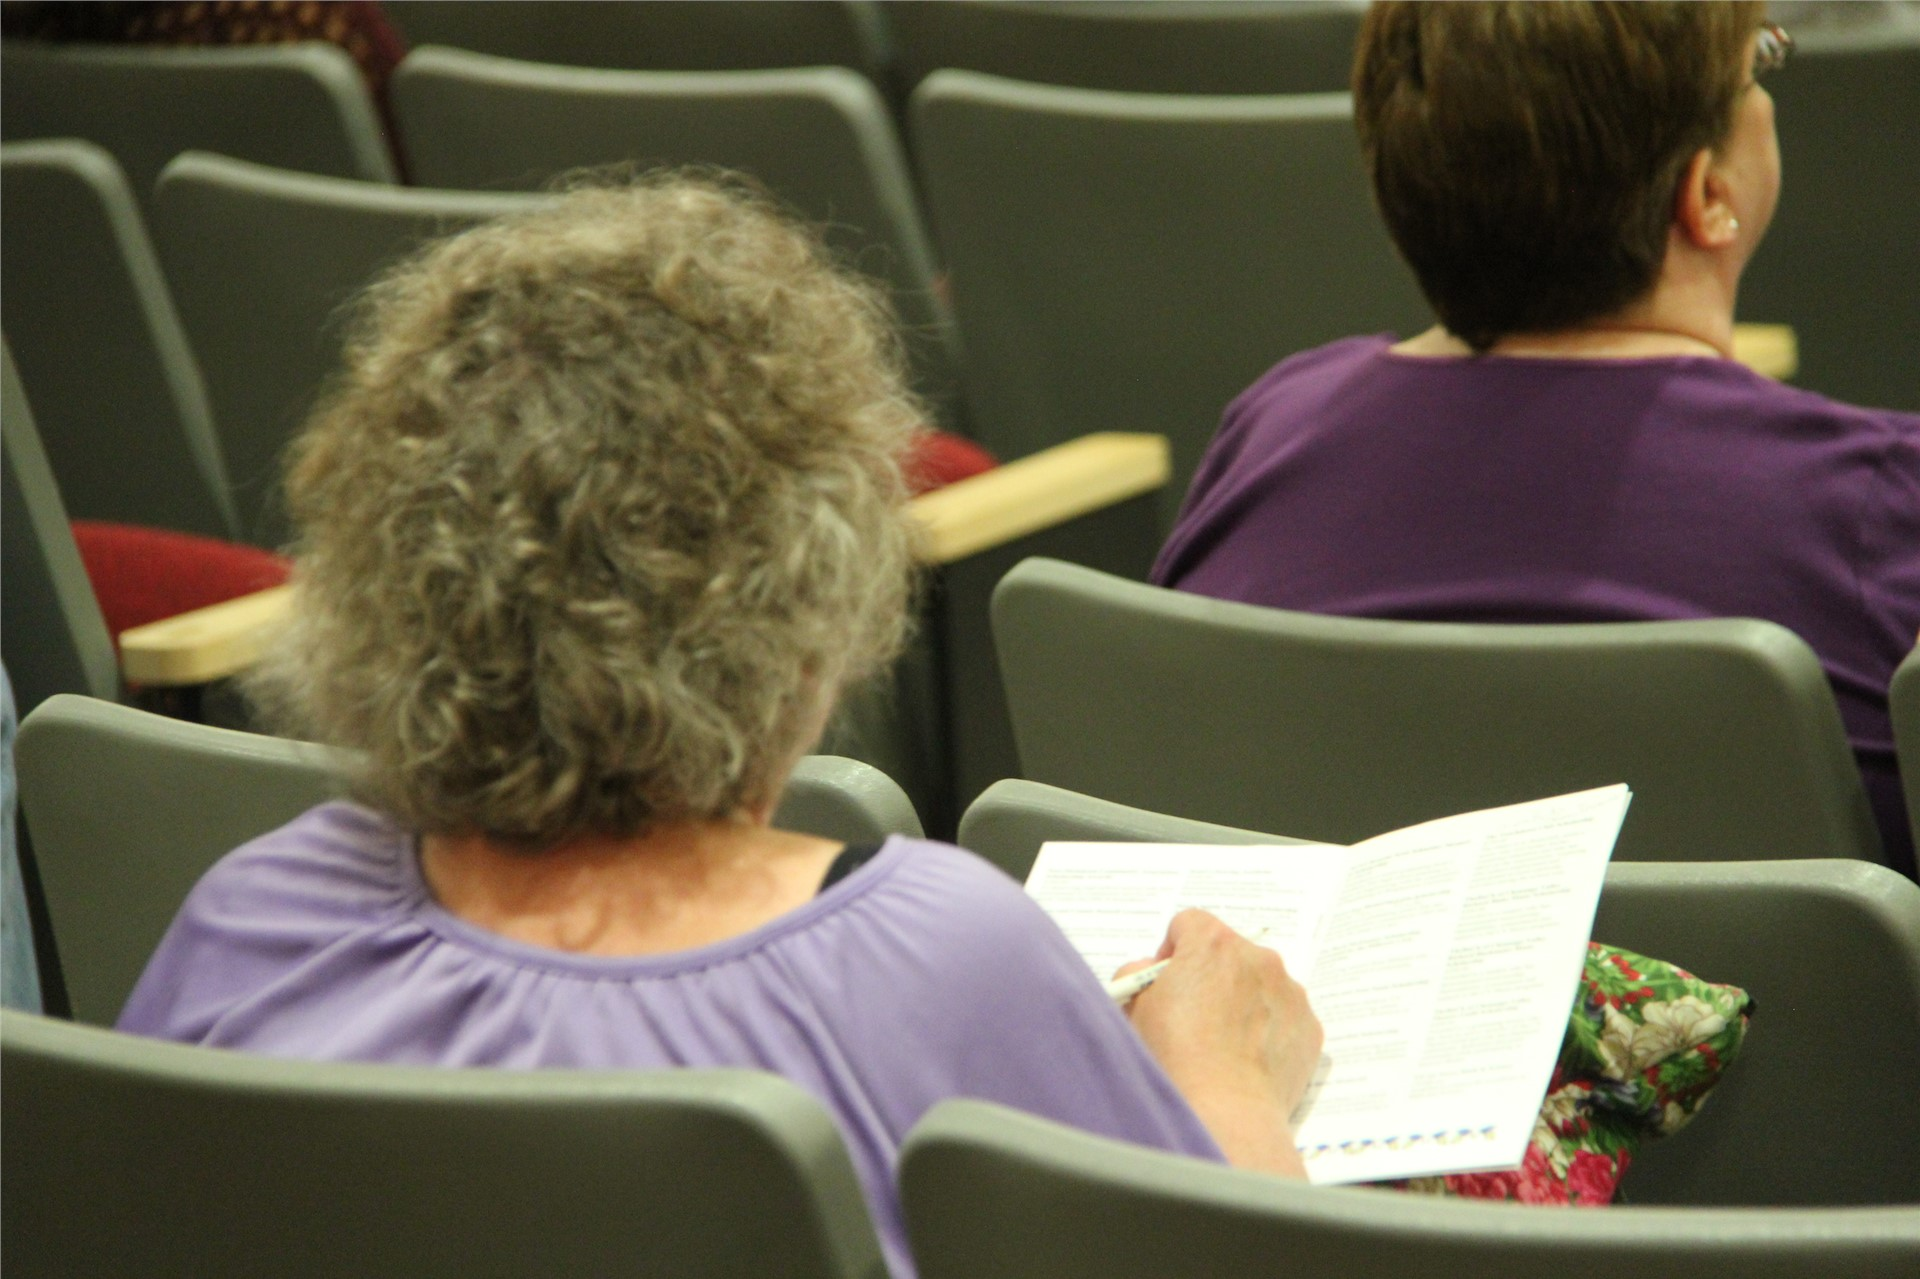 woman in audience holds awards pamphlet in hands